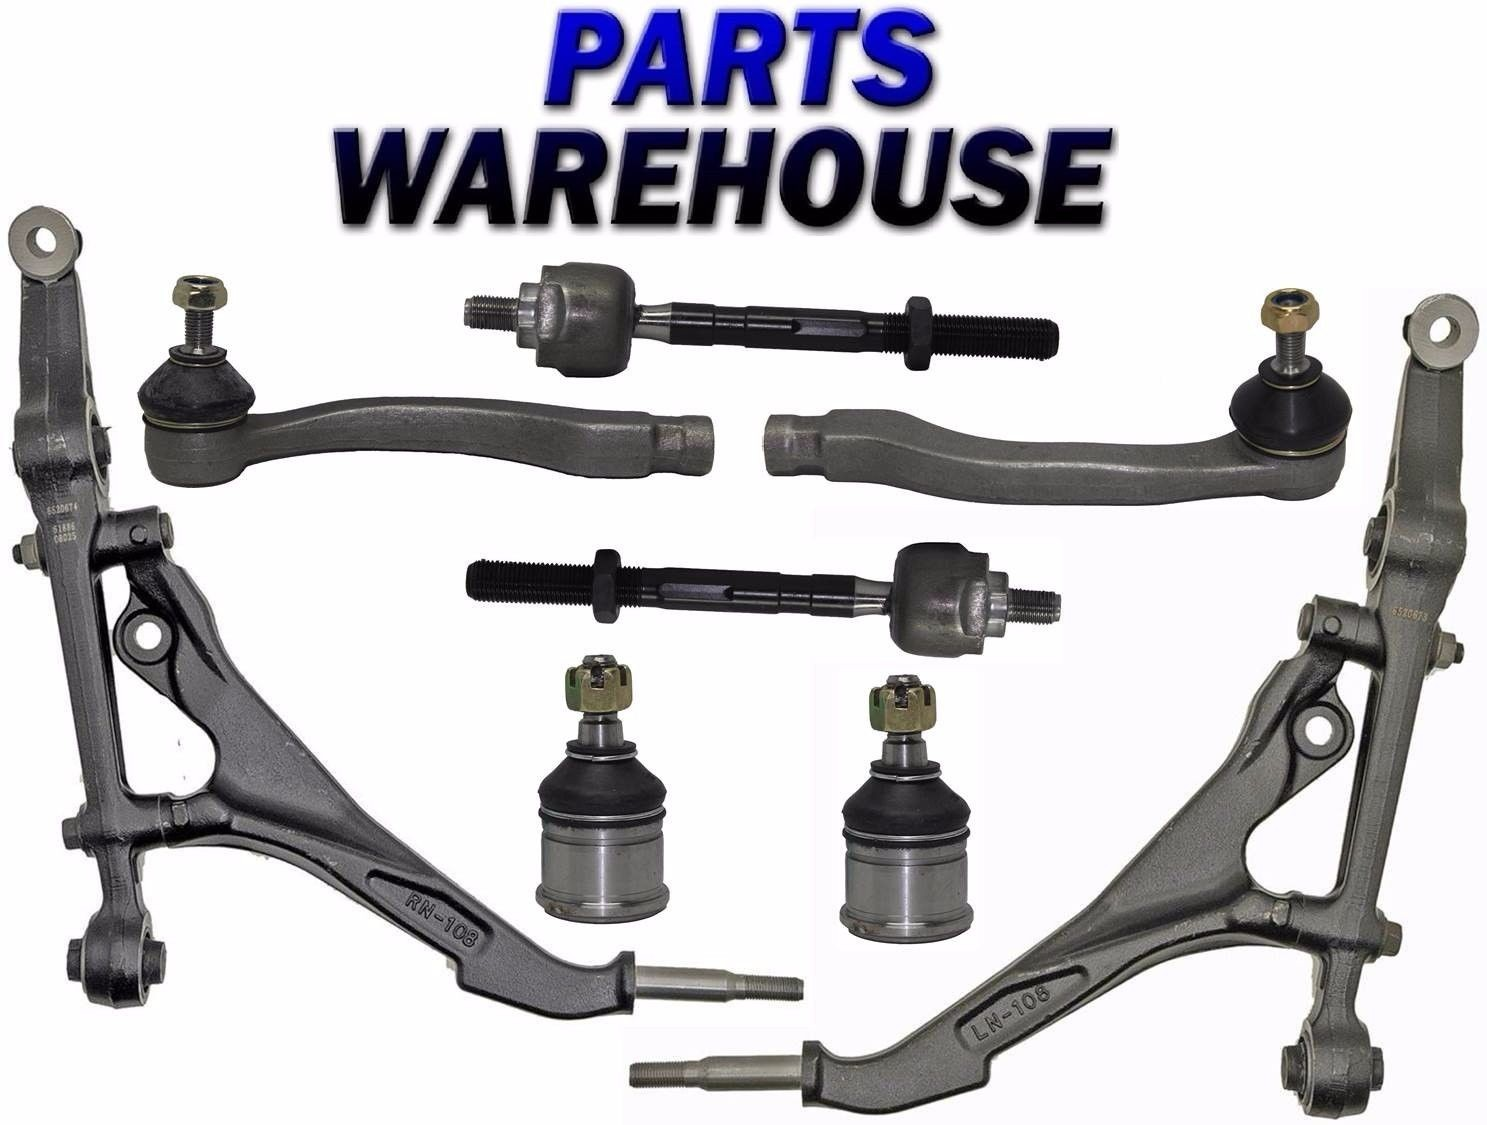 mdx pump inspirational power steering car parts warehouse from fresh acura of strut